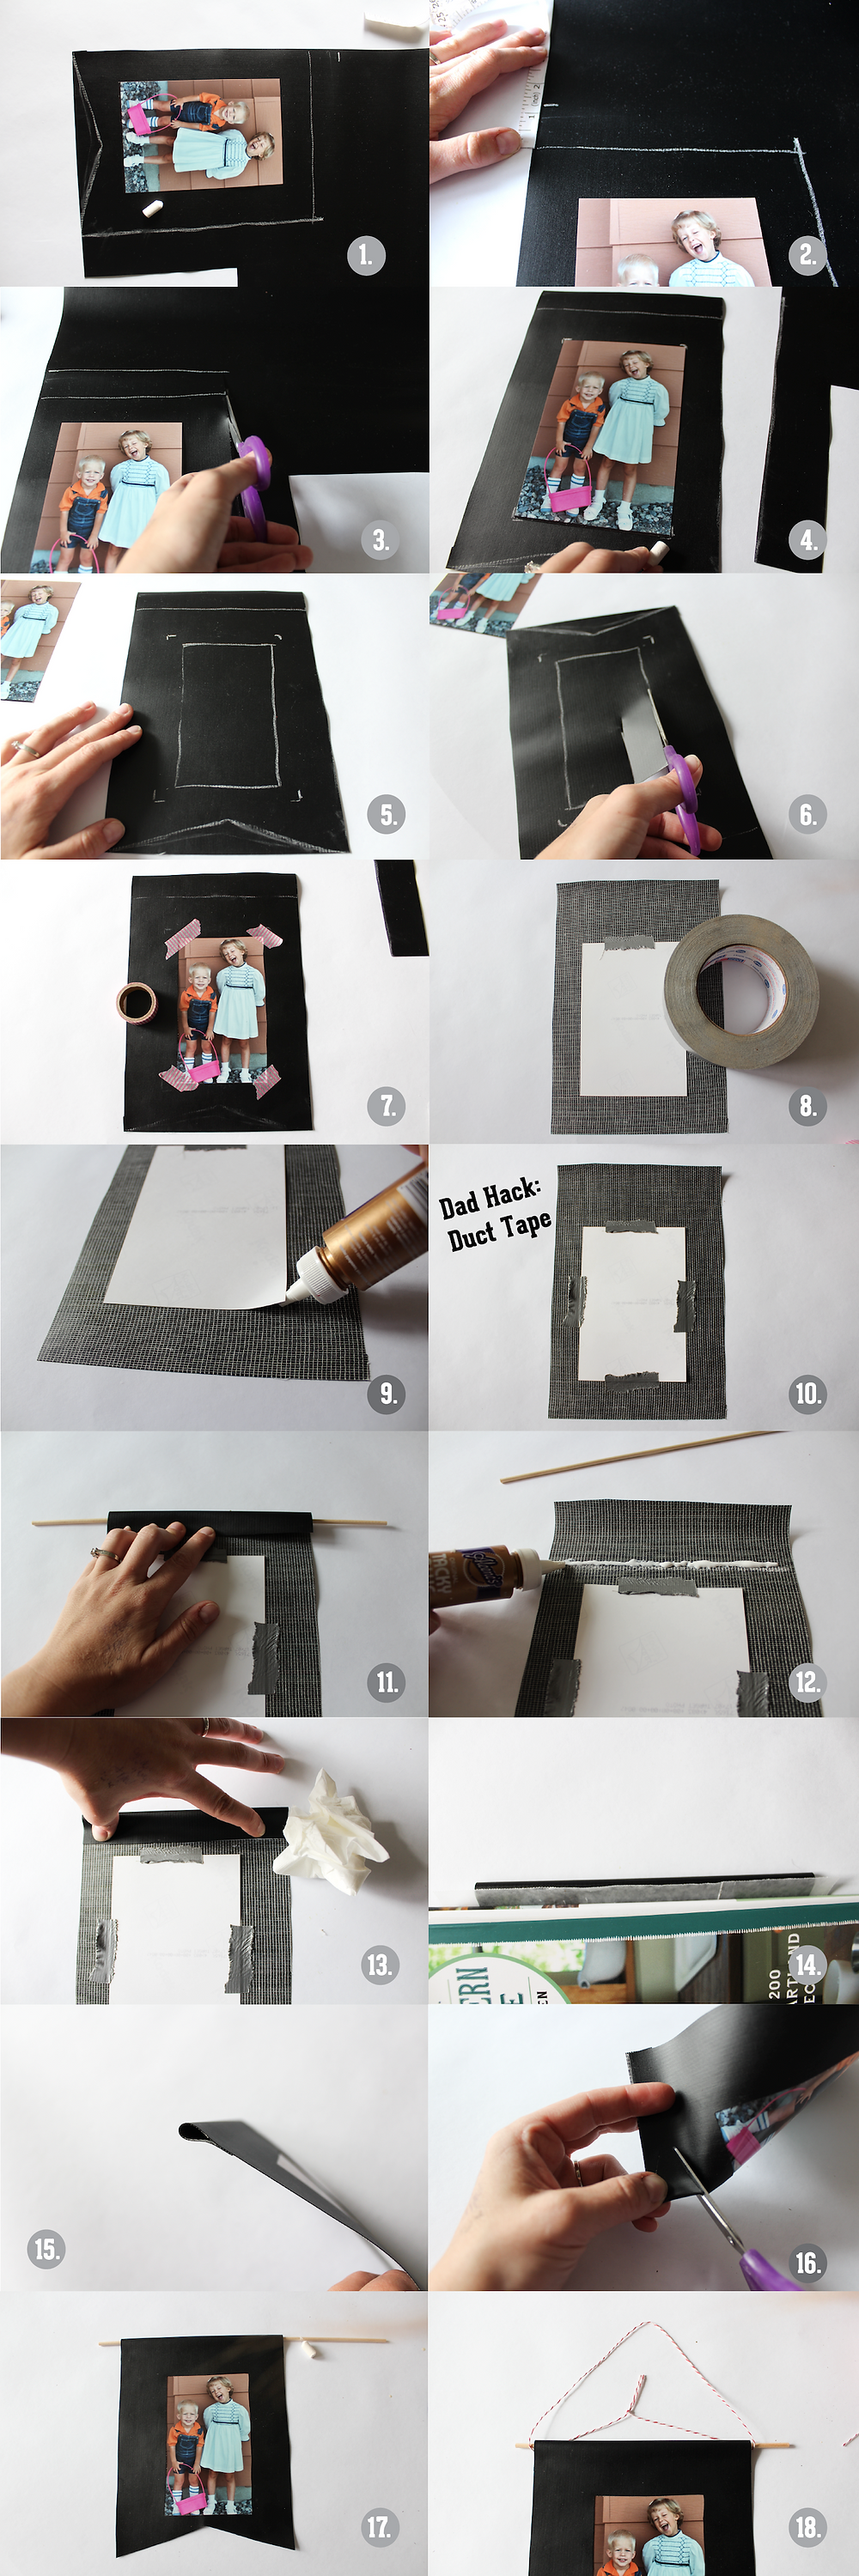 Three Mother's Day COOL Kid's Projects from Unglued!1